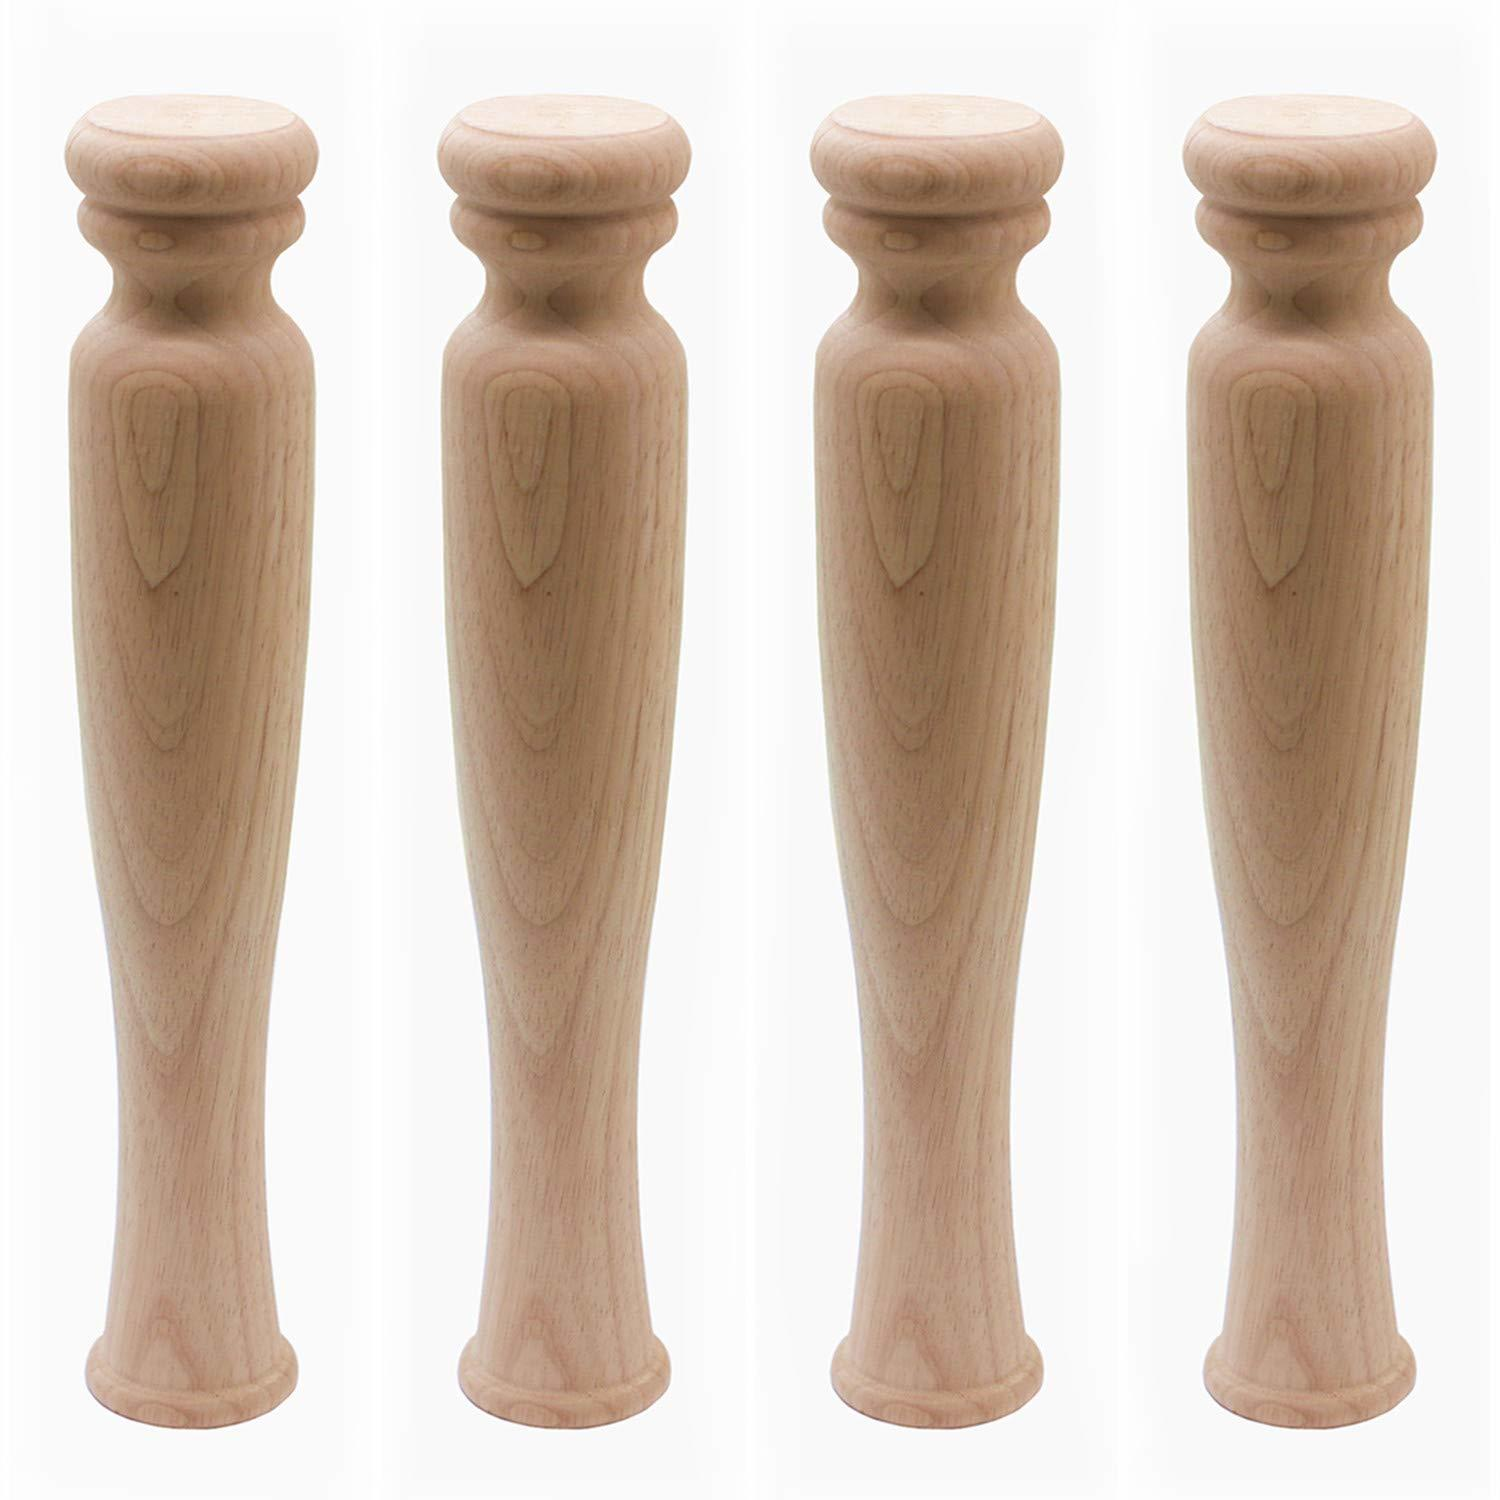 "14"" Solid Unfinished Rubber Wood Furniture Legs Replacement Bench Legs Coffee Table Legs"